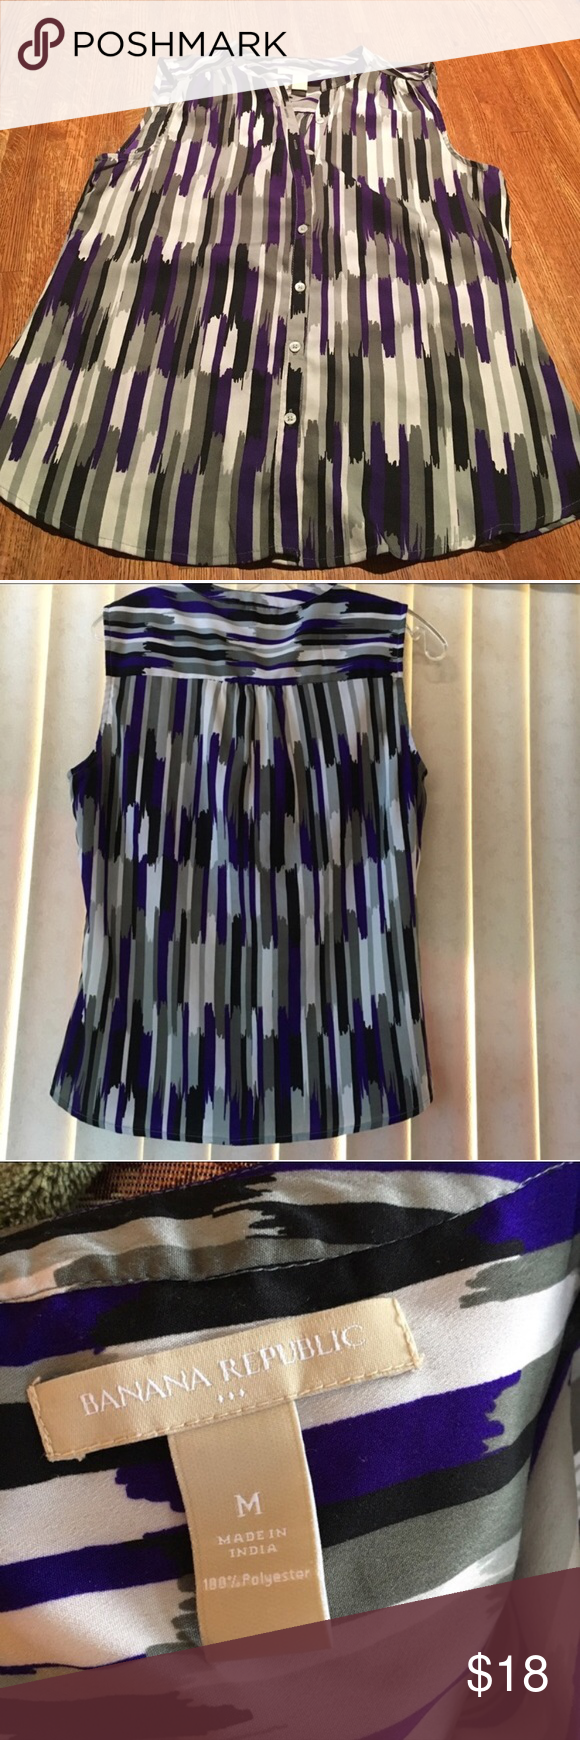 "Banana Republic Sleeveless blouse Top, size medium Grey, black and purple print make this blouse fun. Sleeveless, bust laid flat is 18"", and shoulder to hem is 24"". Banana Republic Tops Blouses"